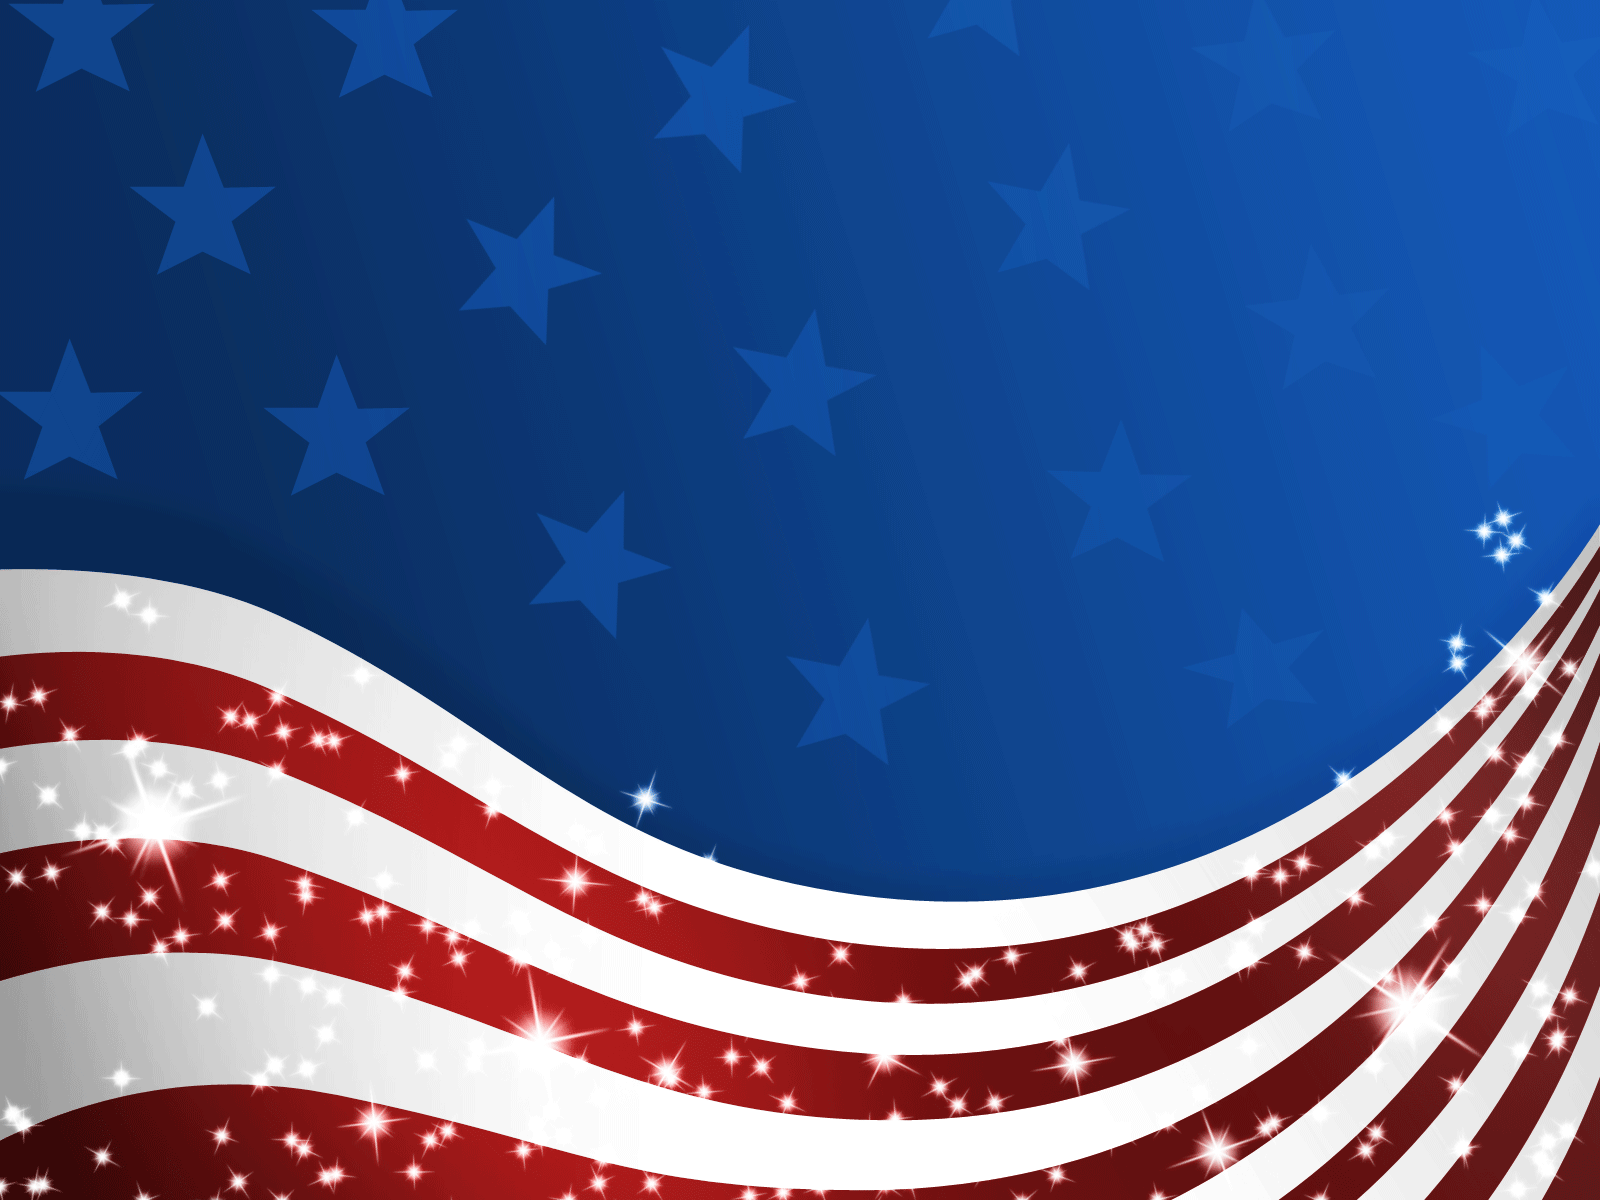 American Patriotic Flag Backgroundspng The West 1600x1200